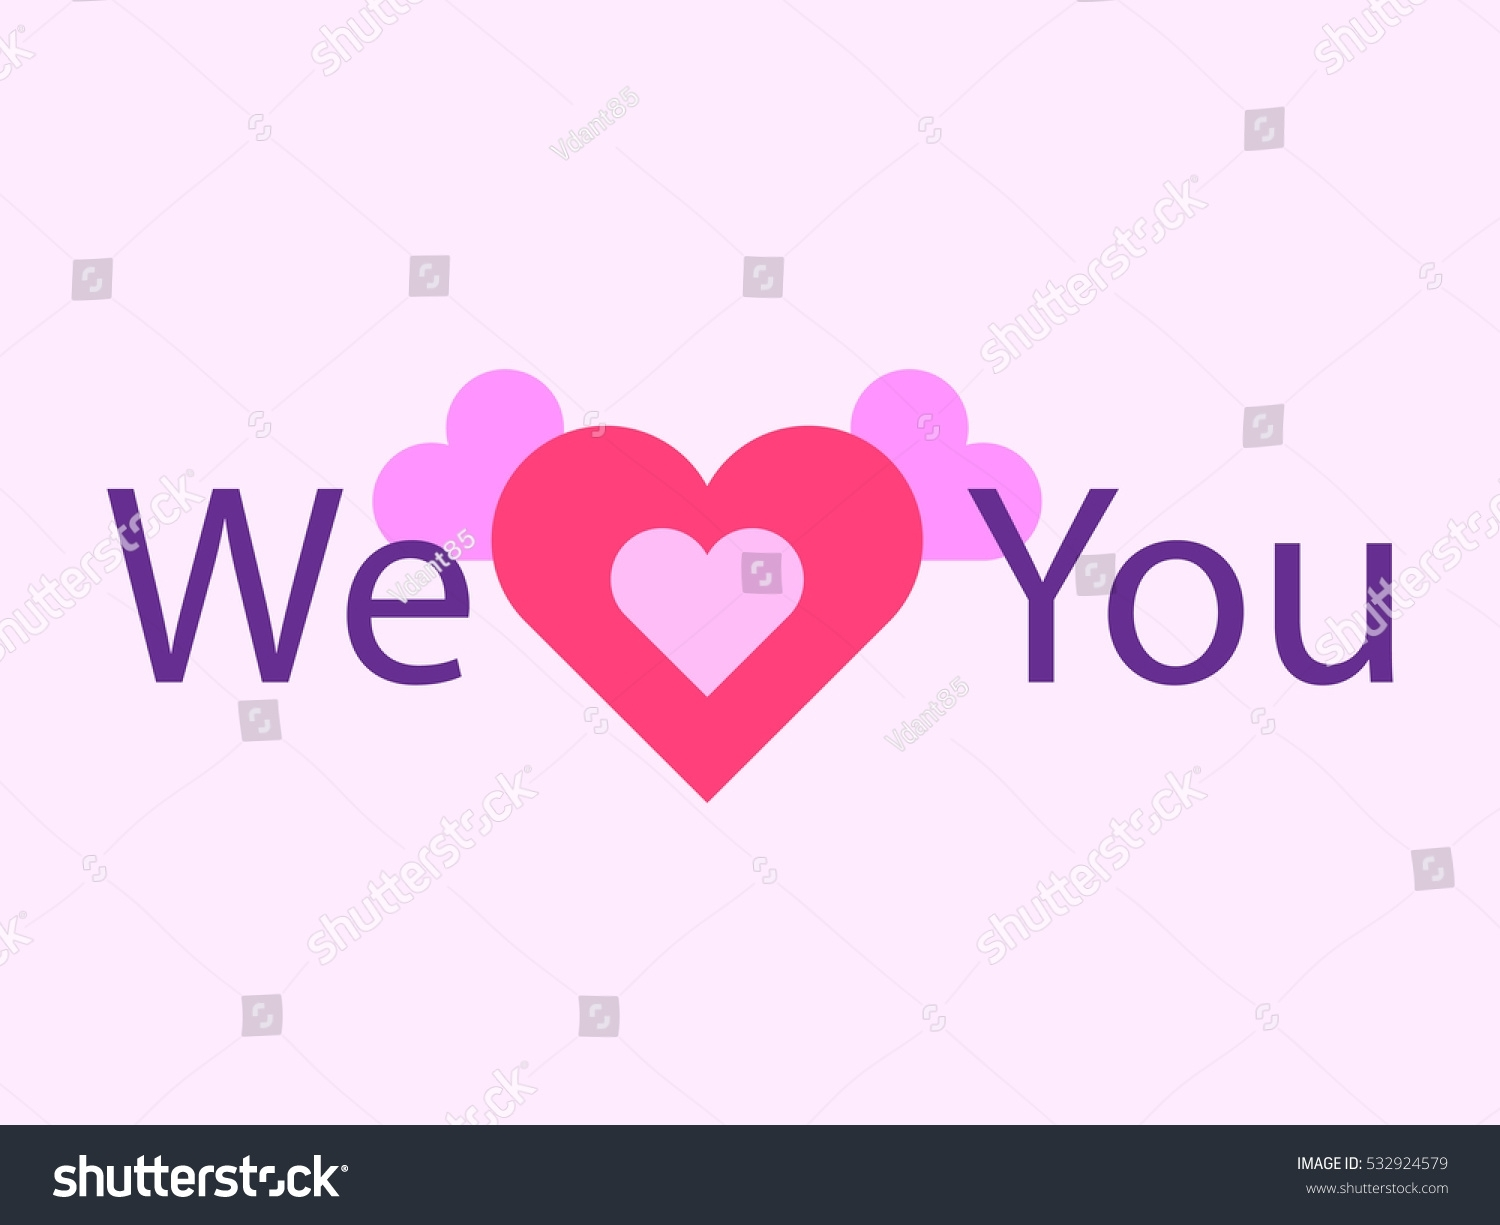 we love you red heart symbol image vectorielle 532924579 - shutterstock